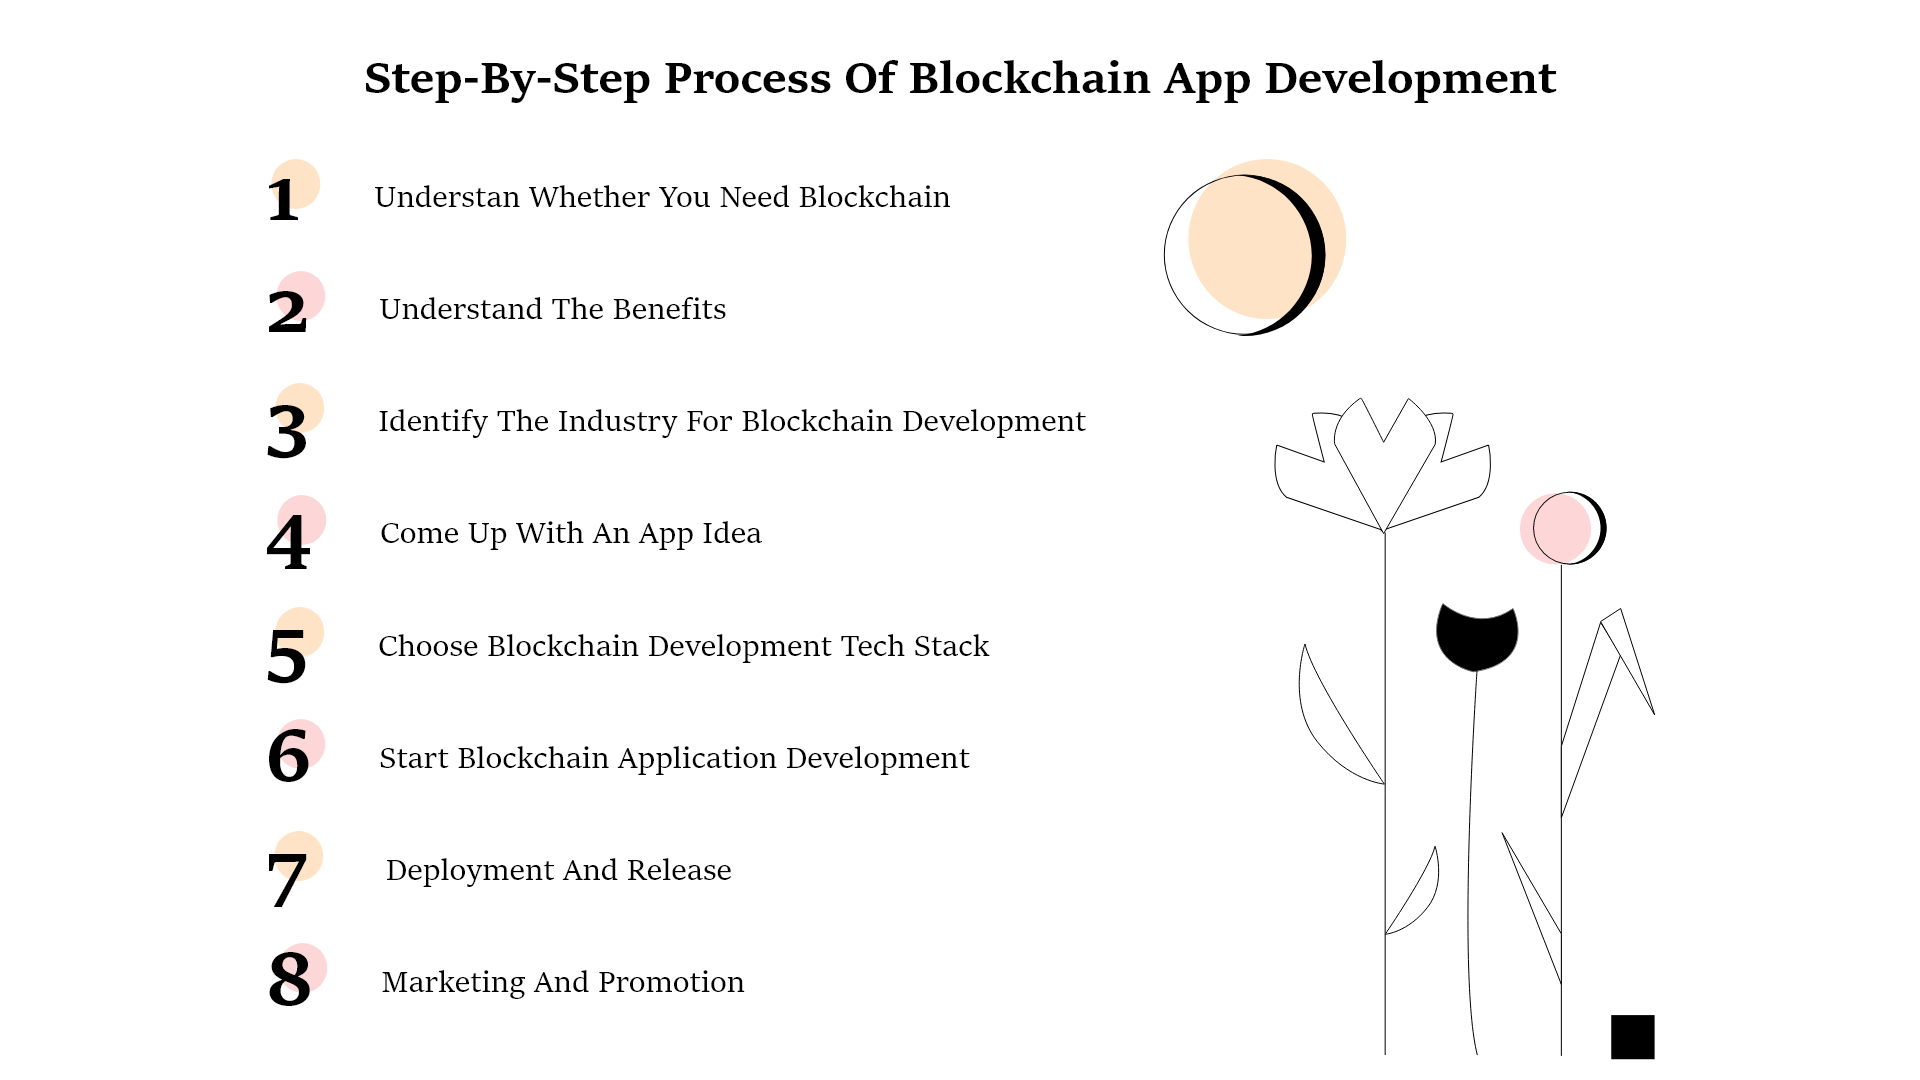 How to Create a Blockchain App: Process Overview